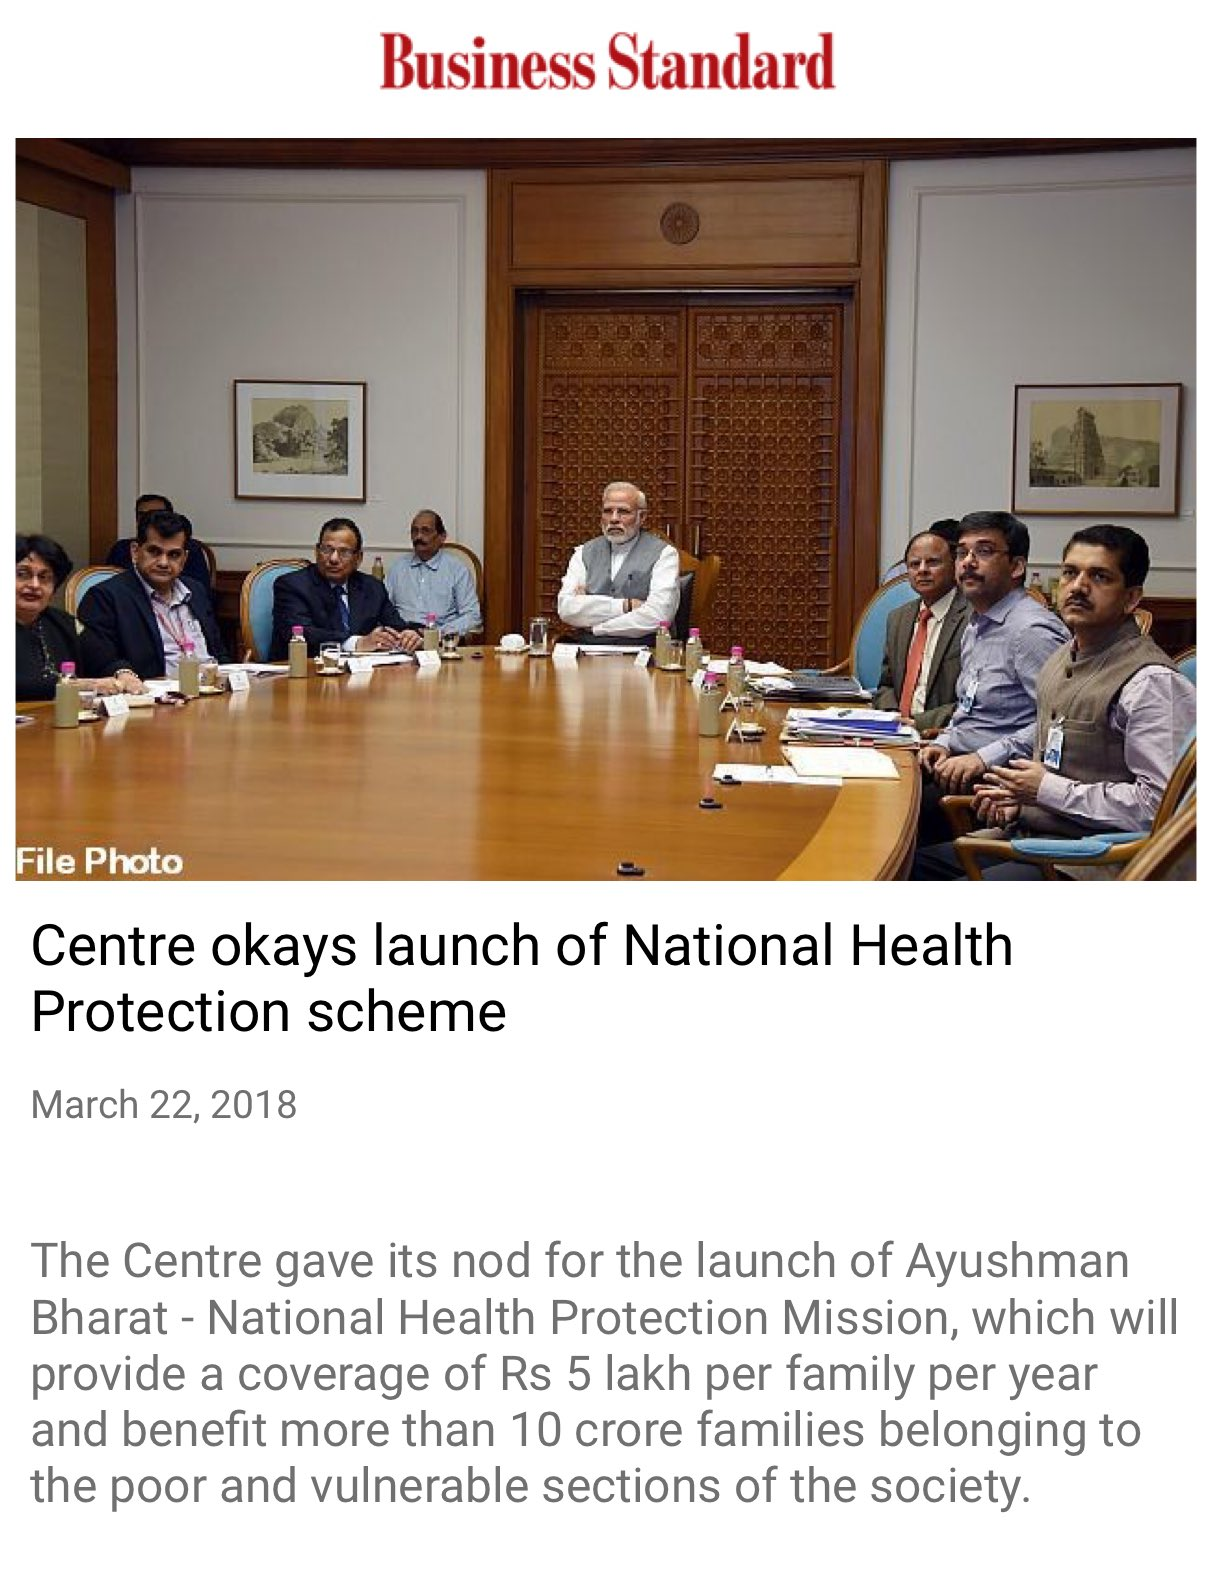 Centre okays launch of National Health Protection scheme.  https://t.co/VlDoqFz106  via NMApp https://t.co/8nHp1D2Hw0